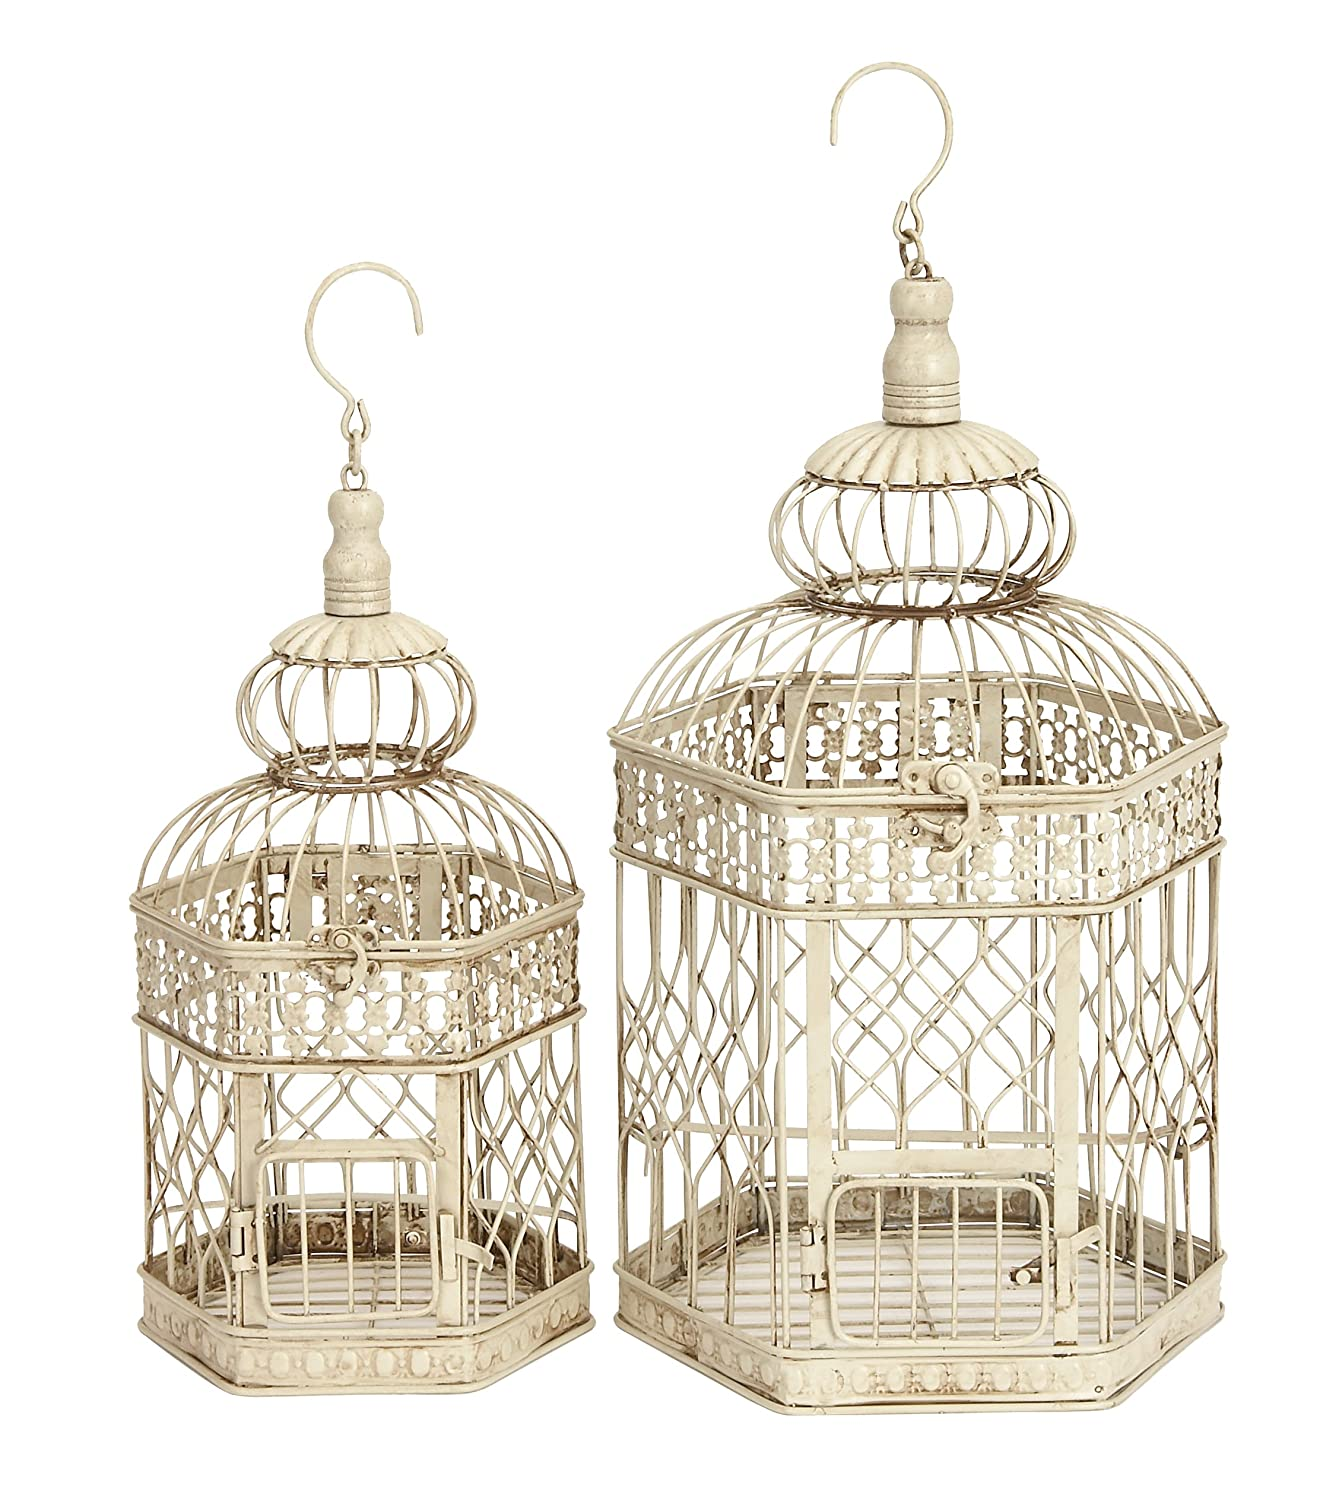 Deco 79 Metal Bird Cage